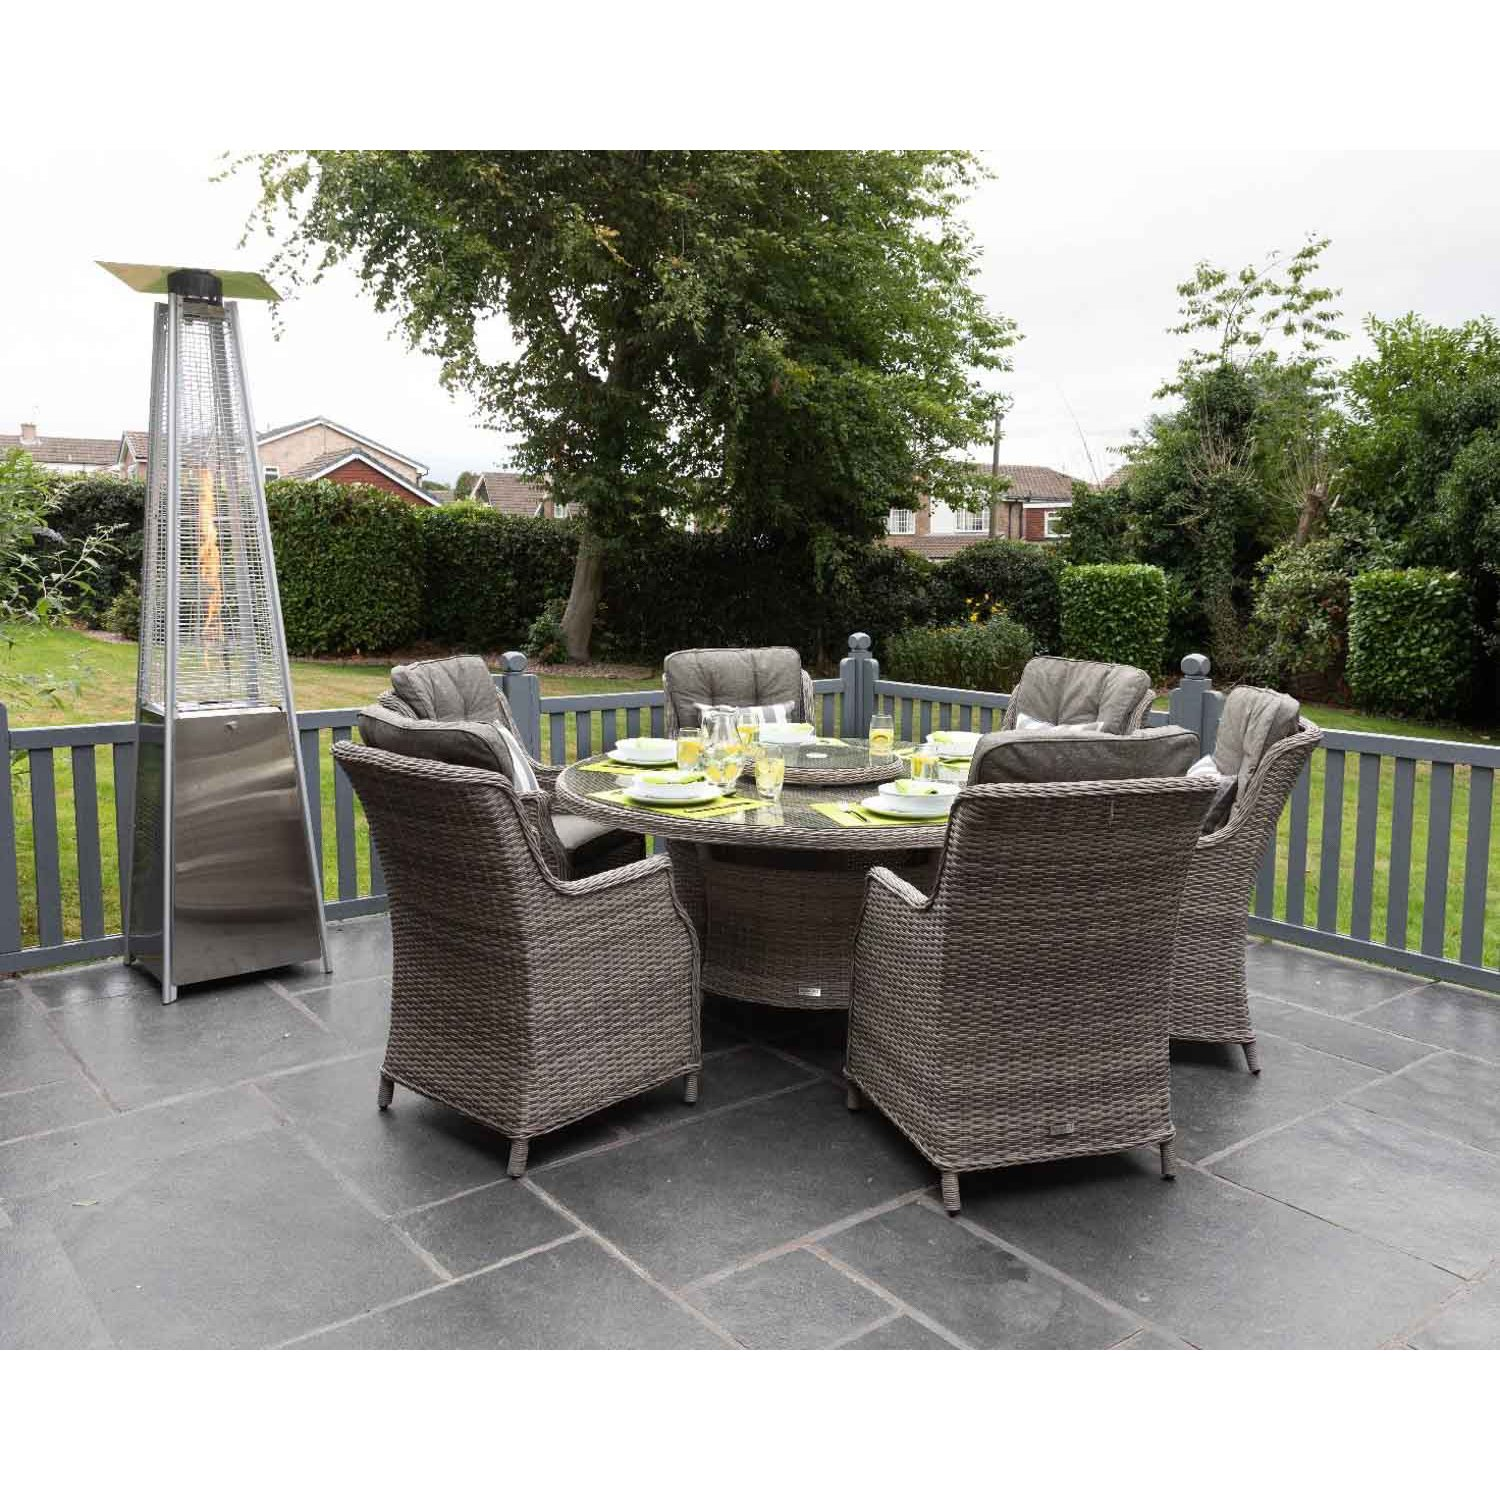 image-Riviera 6 Rattan Garden Dining Chairs and Large Round Table Set in Grey